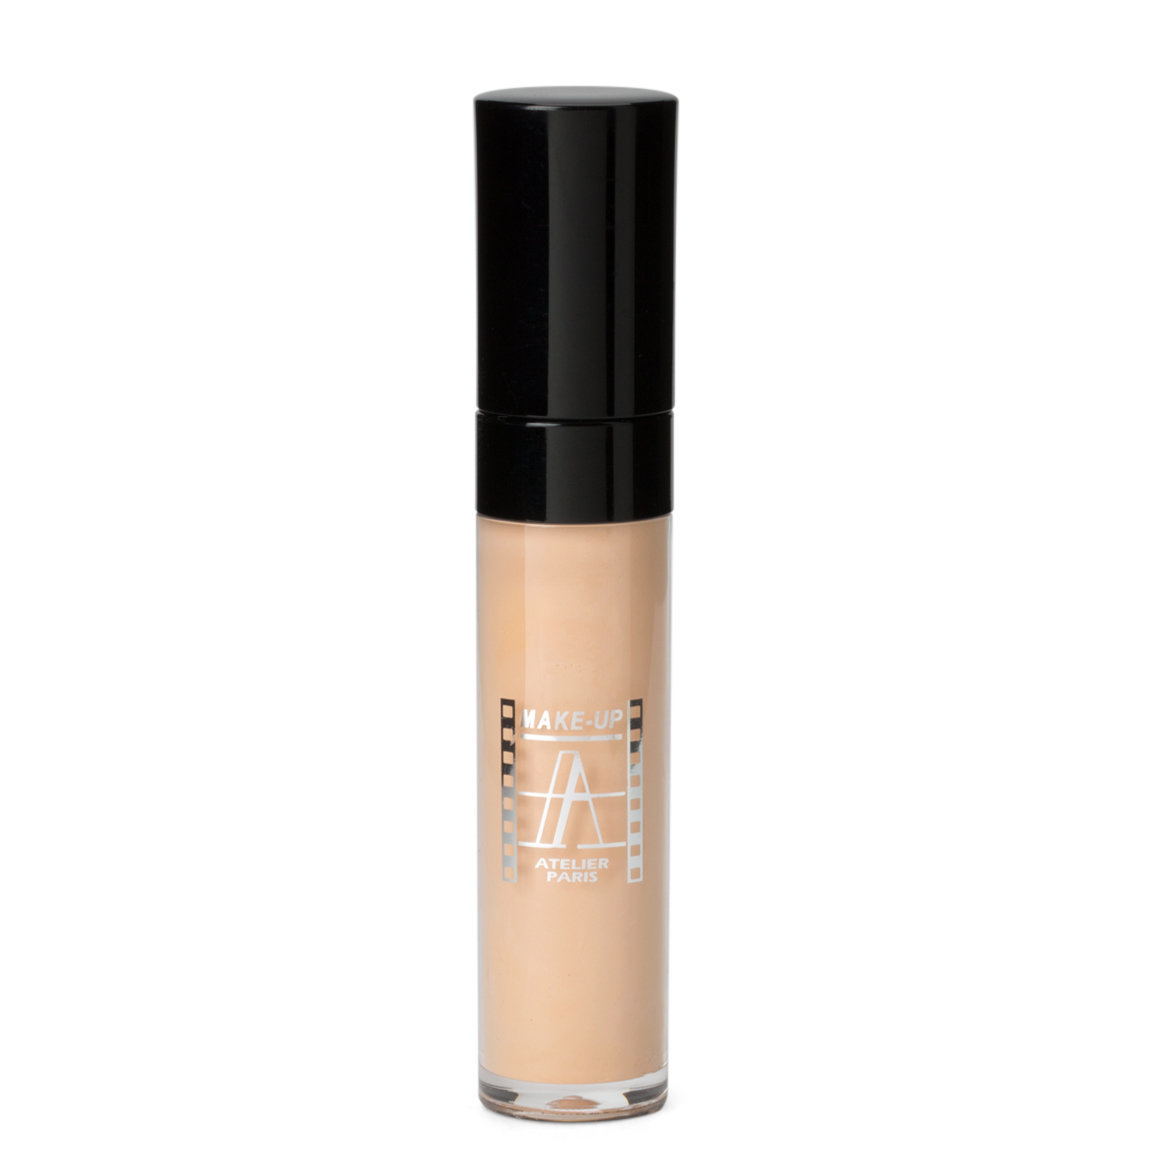 Make-Up Atelier Fluid Concealer Apricot FLWA2 Medium Apricot